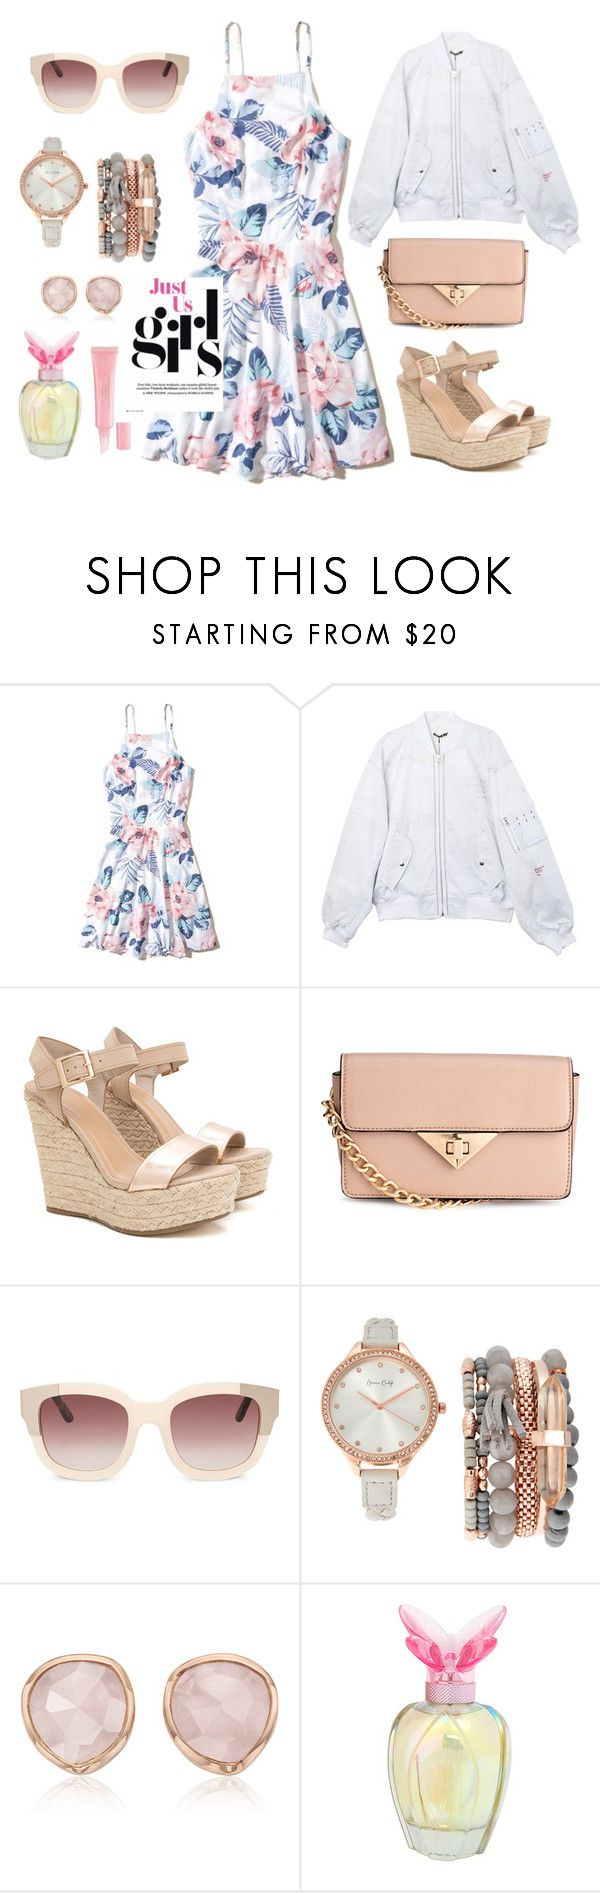 """Just Us Girls"" by hiddensoulmemories ❤ liked on Polyvore featuring Hollister Co., H&M, Jessica Carlyle, Monica Vinader, Mariah Carey and Christian Dior"